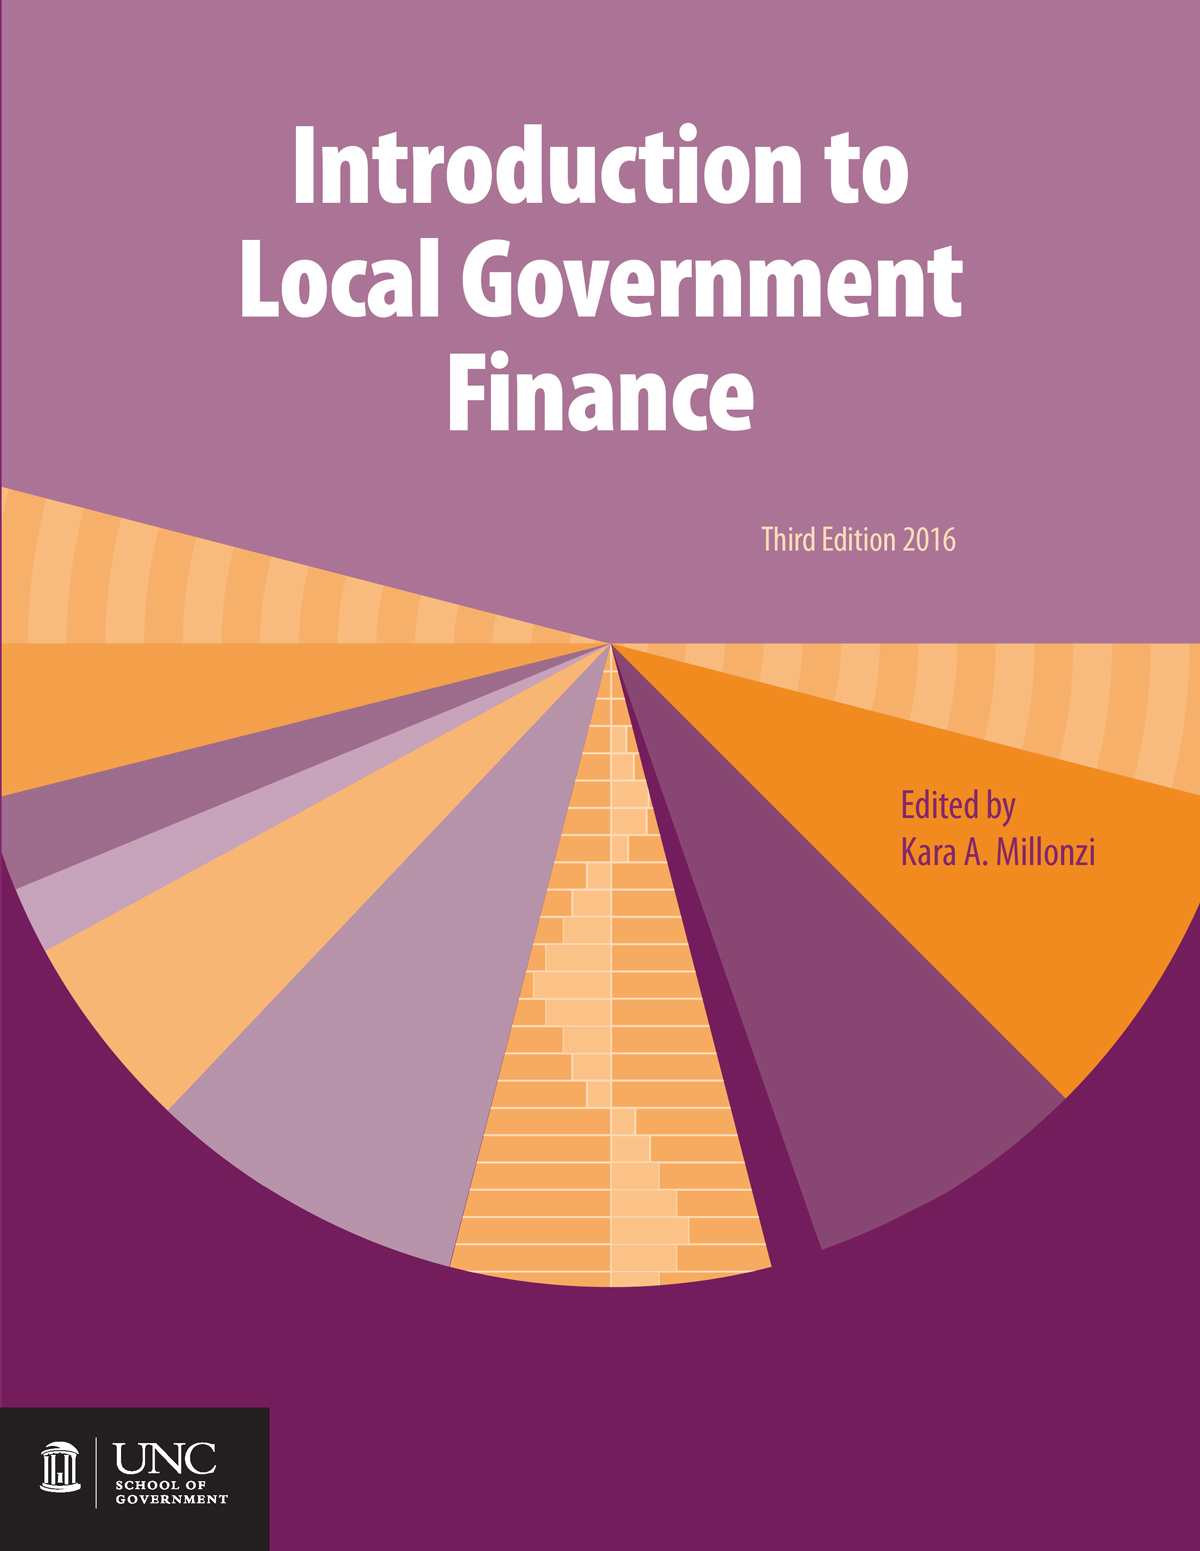 Introduction to Local Government Finance, Third Edition 2016